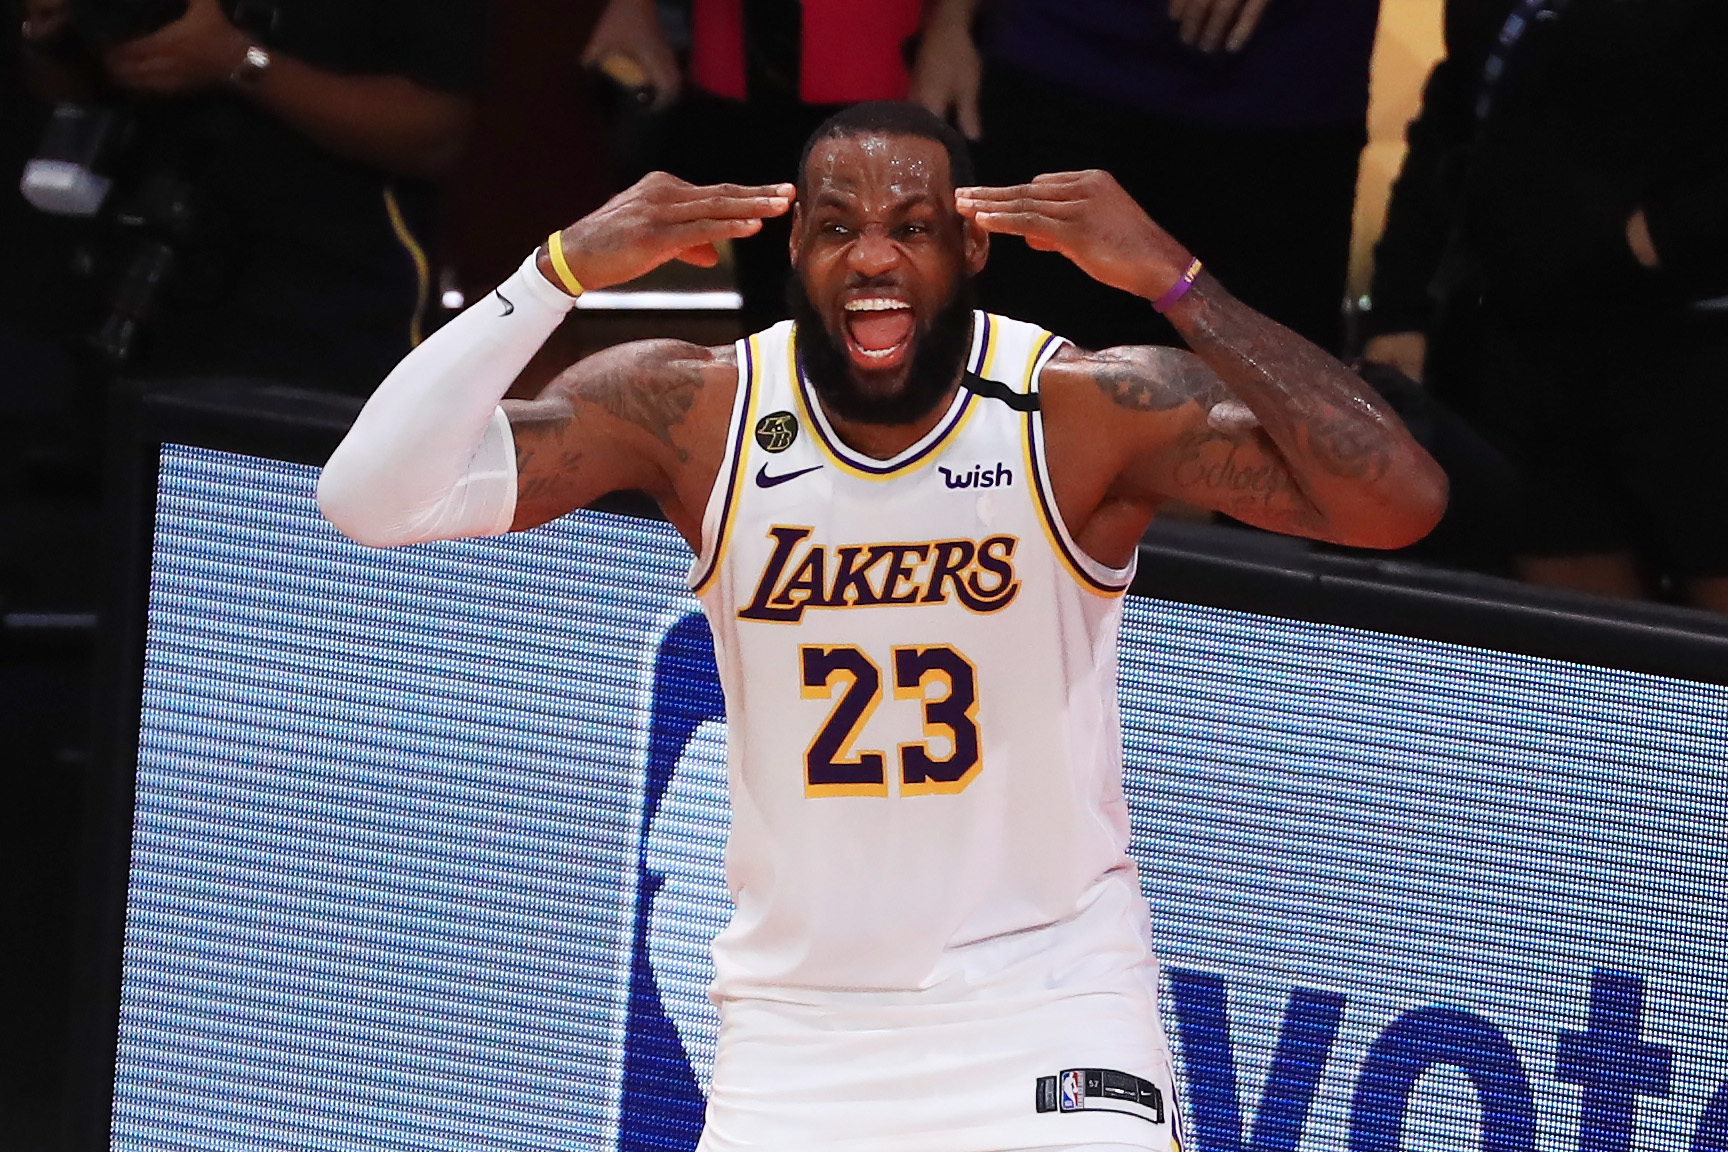 LeBron James of the Los Angeles Lakers reacts after winning the 2020 NBA Championship